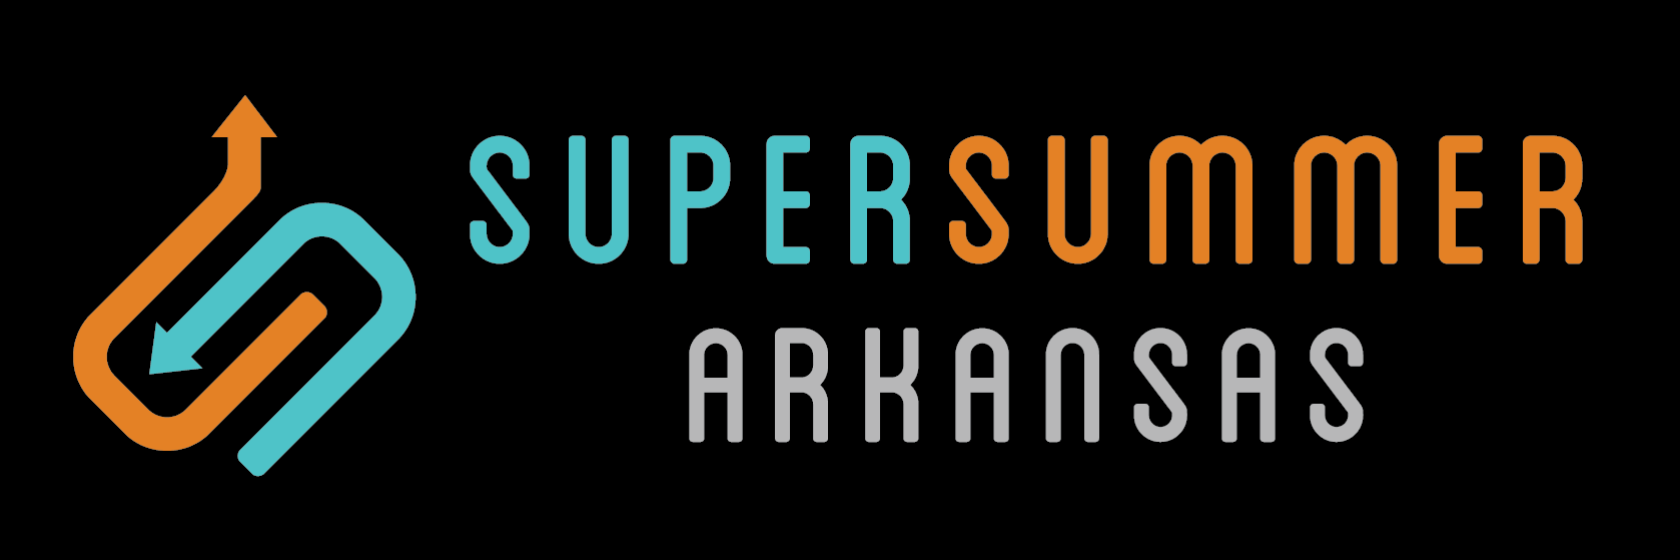 Saddened to announce Super Summer 2020 is canceled.